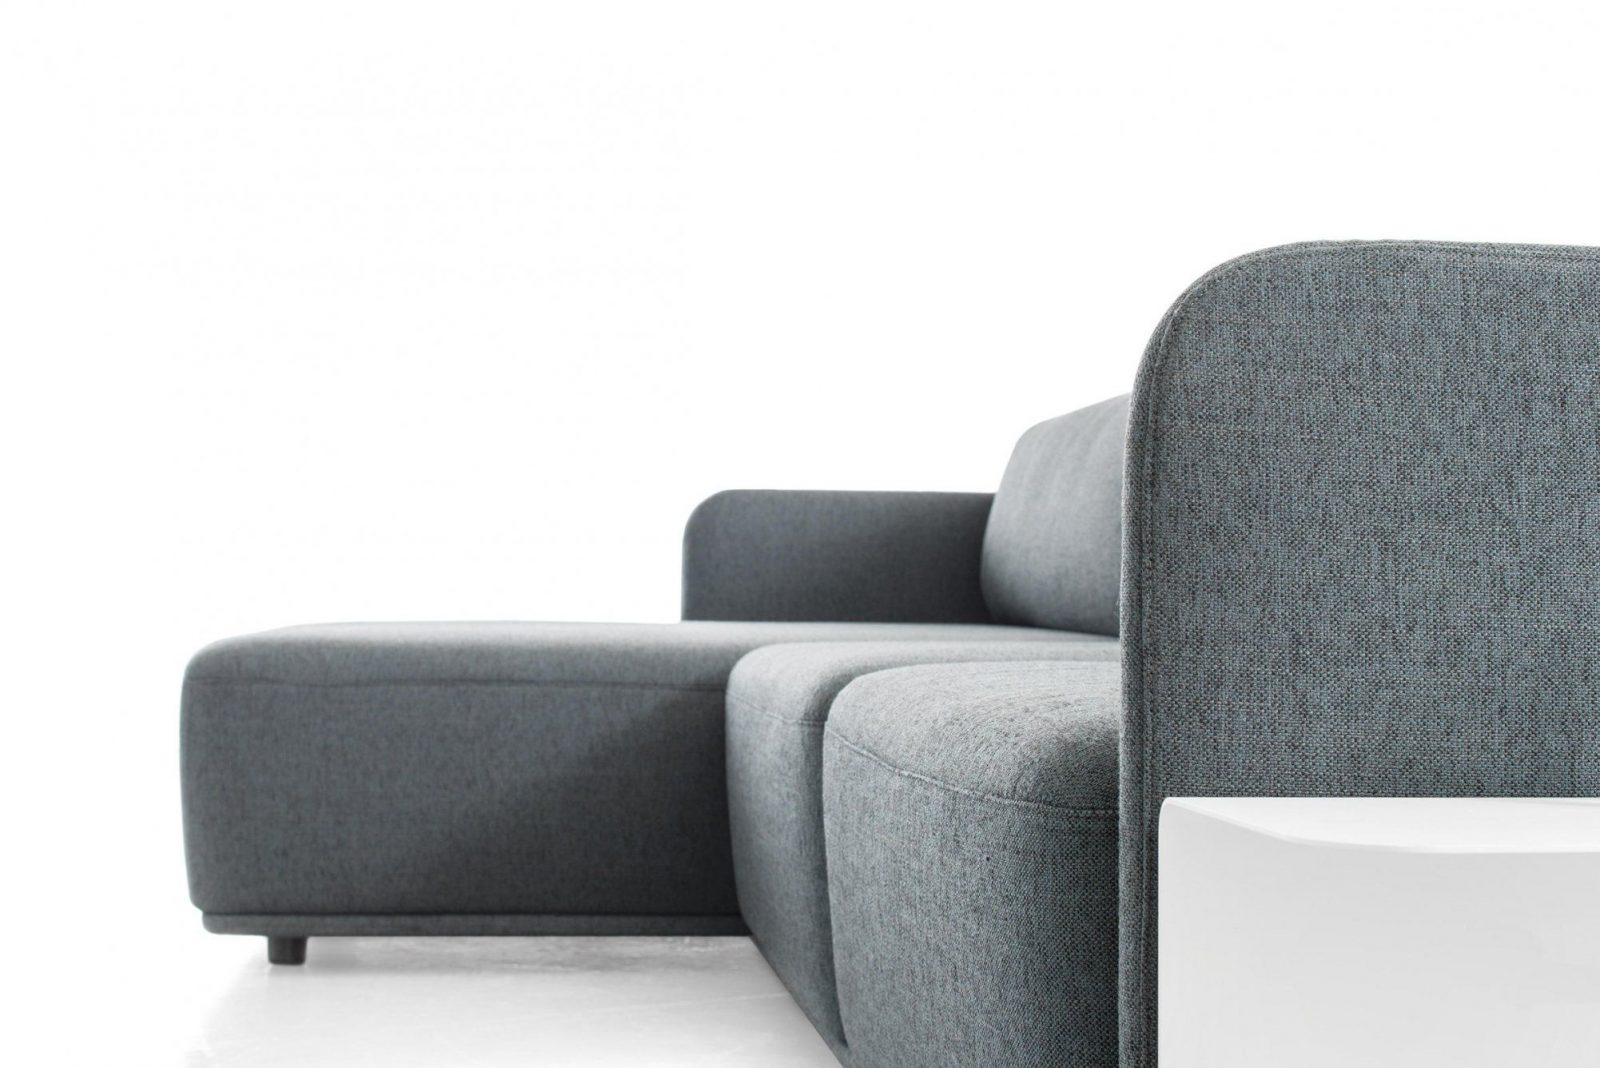 Molis Sofa  Sofas From Conmoto  Architonic von Seats And Sofas Köln Bild